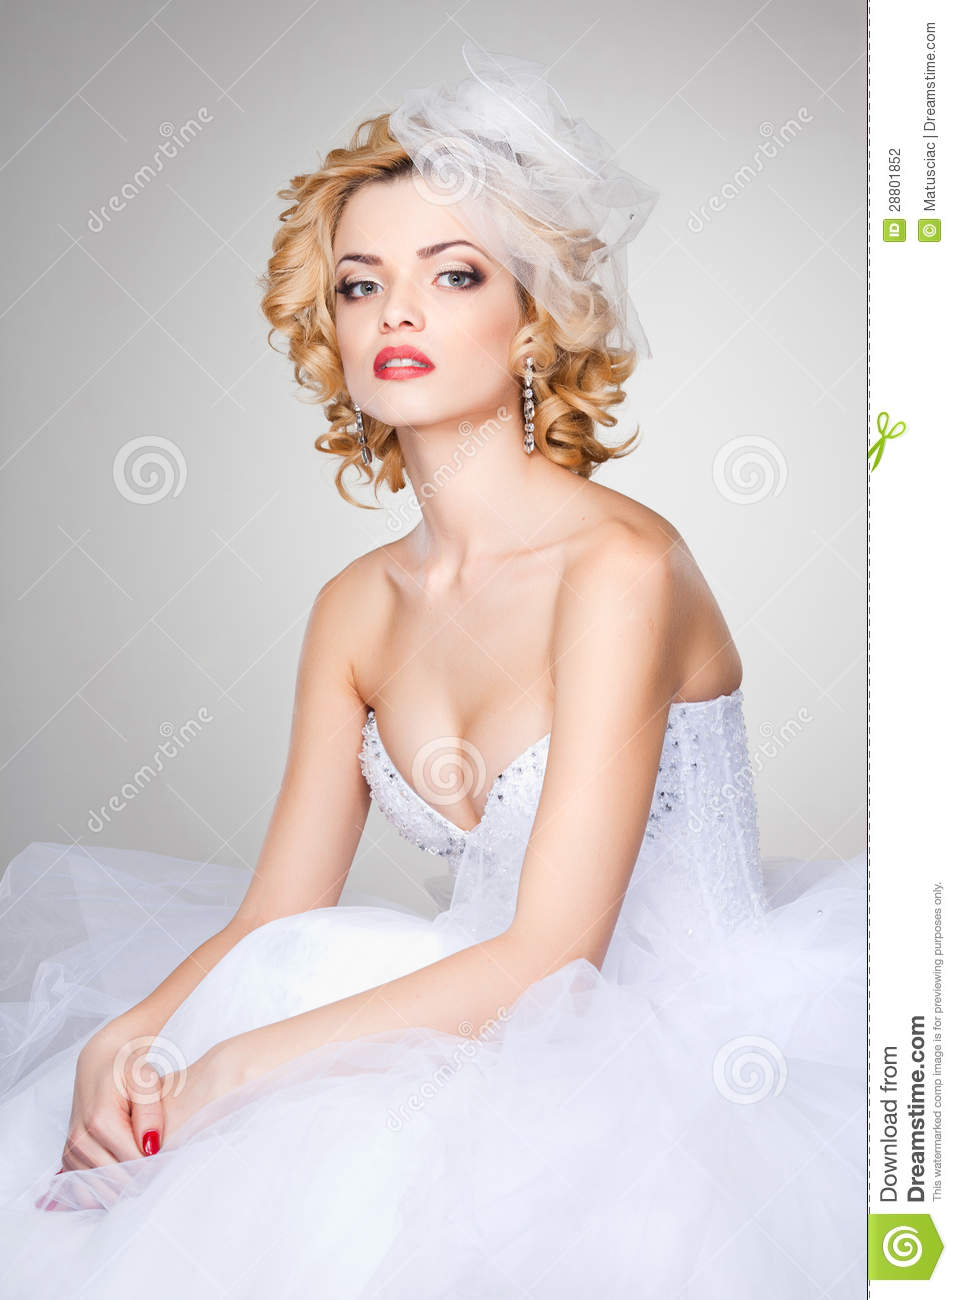 Apologise, Flyleaf beautiful bride france stocking sex movies pity